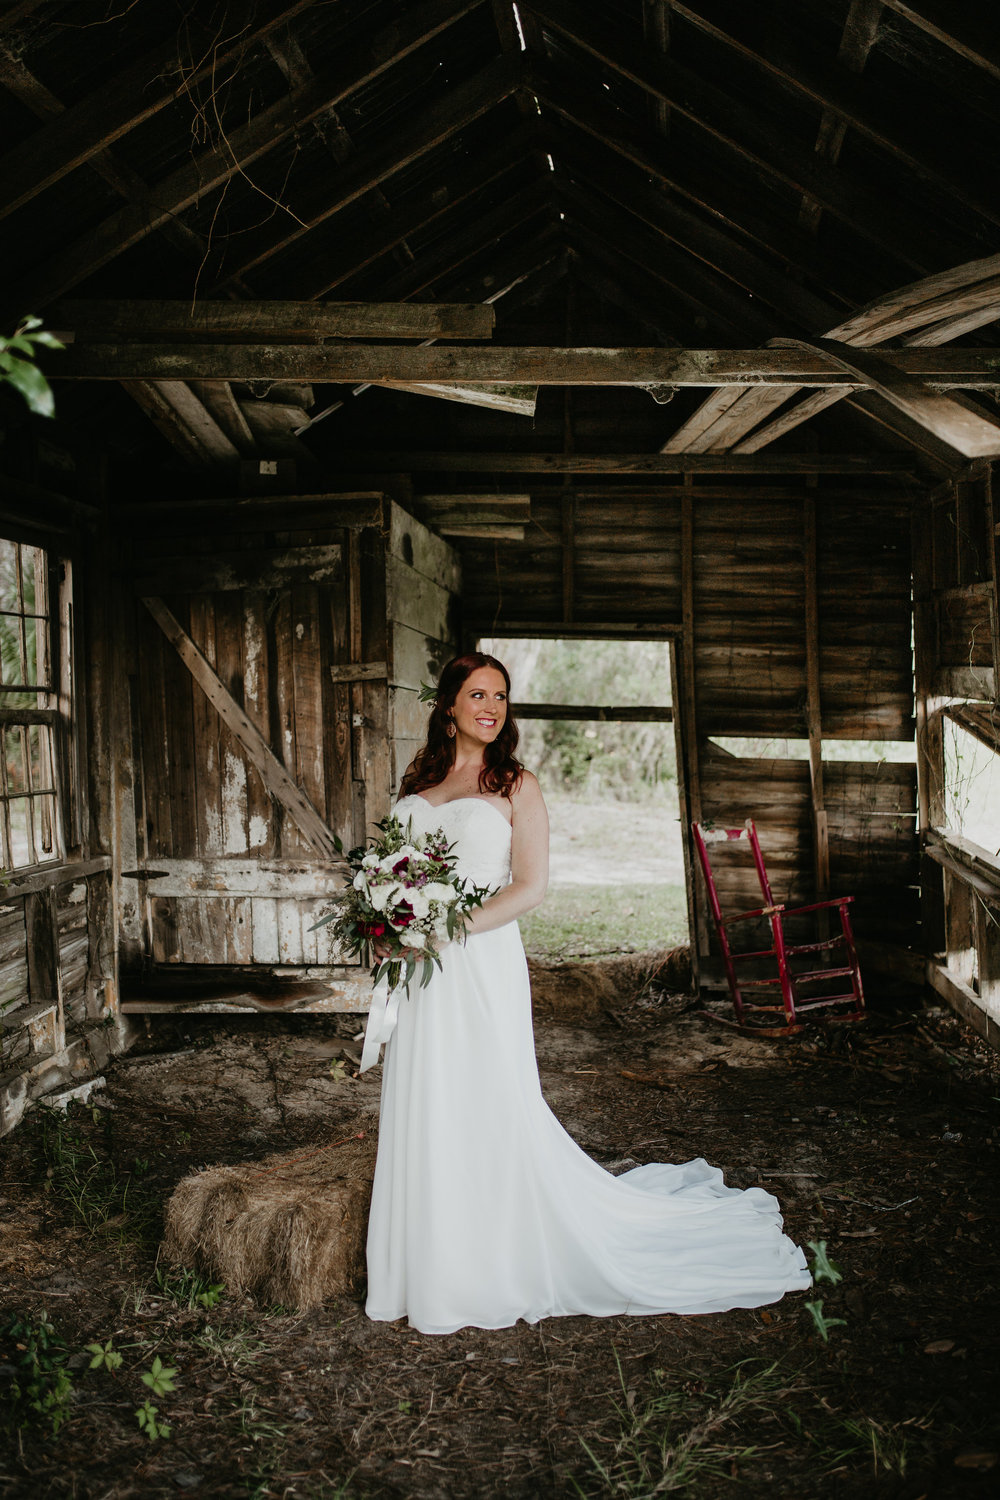 Southern Style Florida Wedding Venue Together-3.jpg